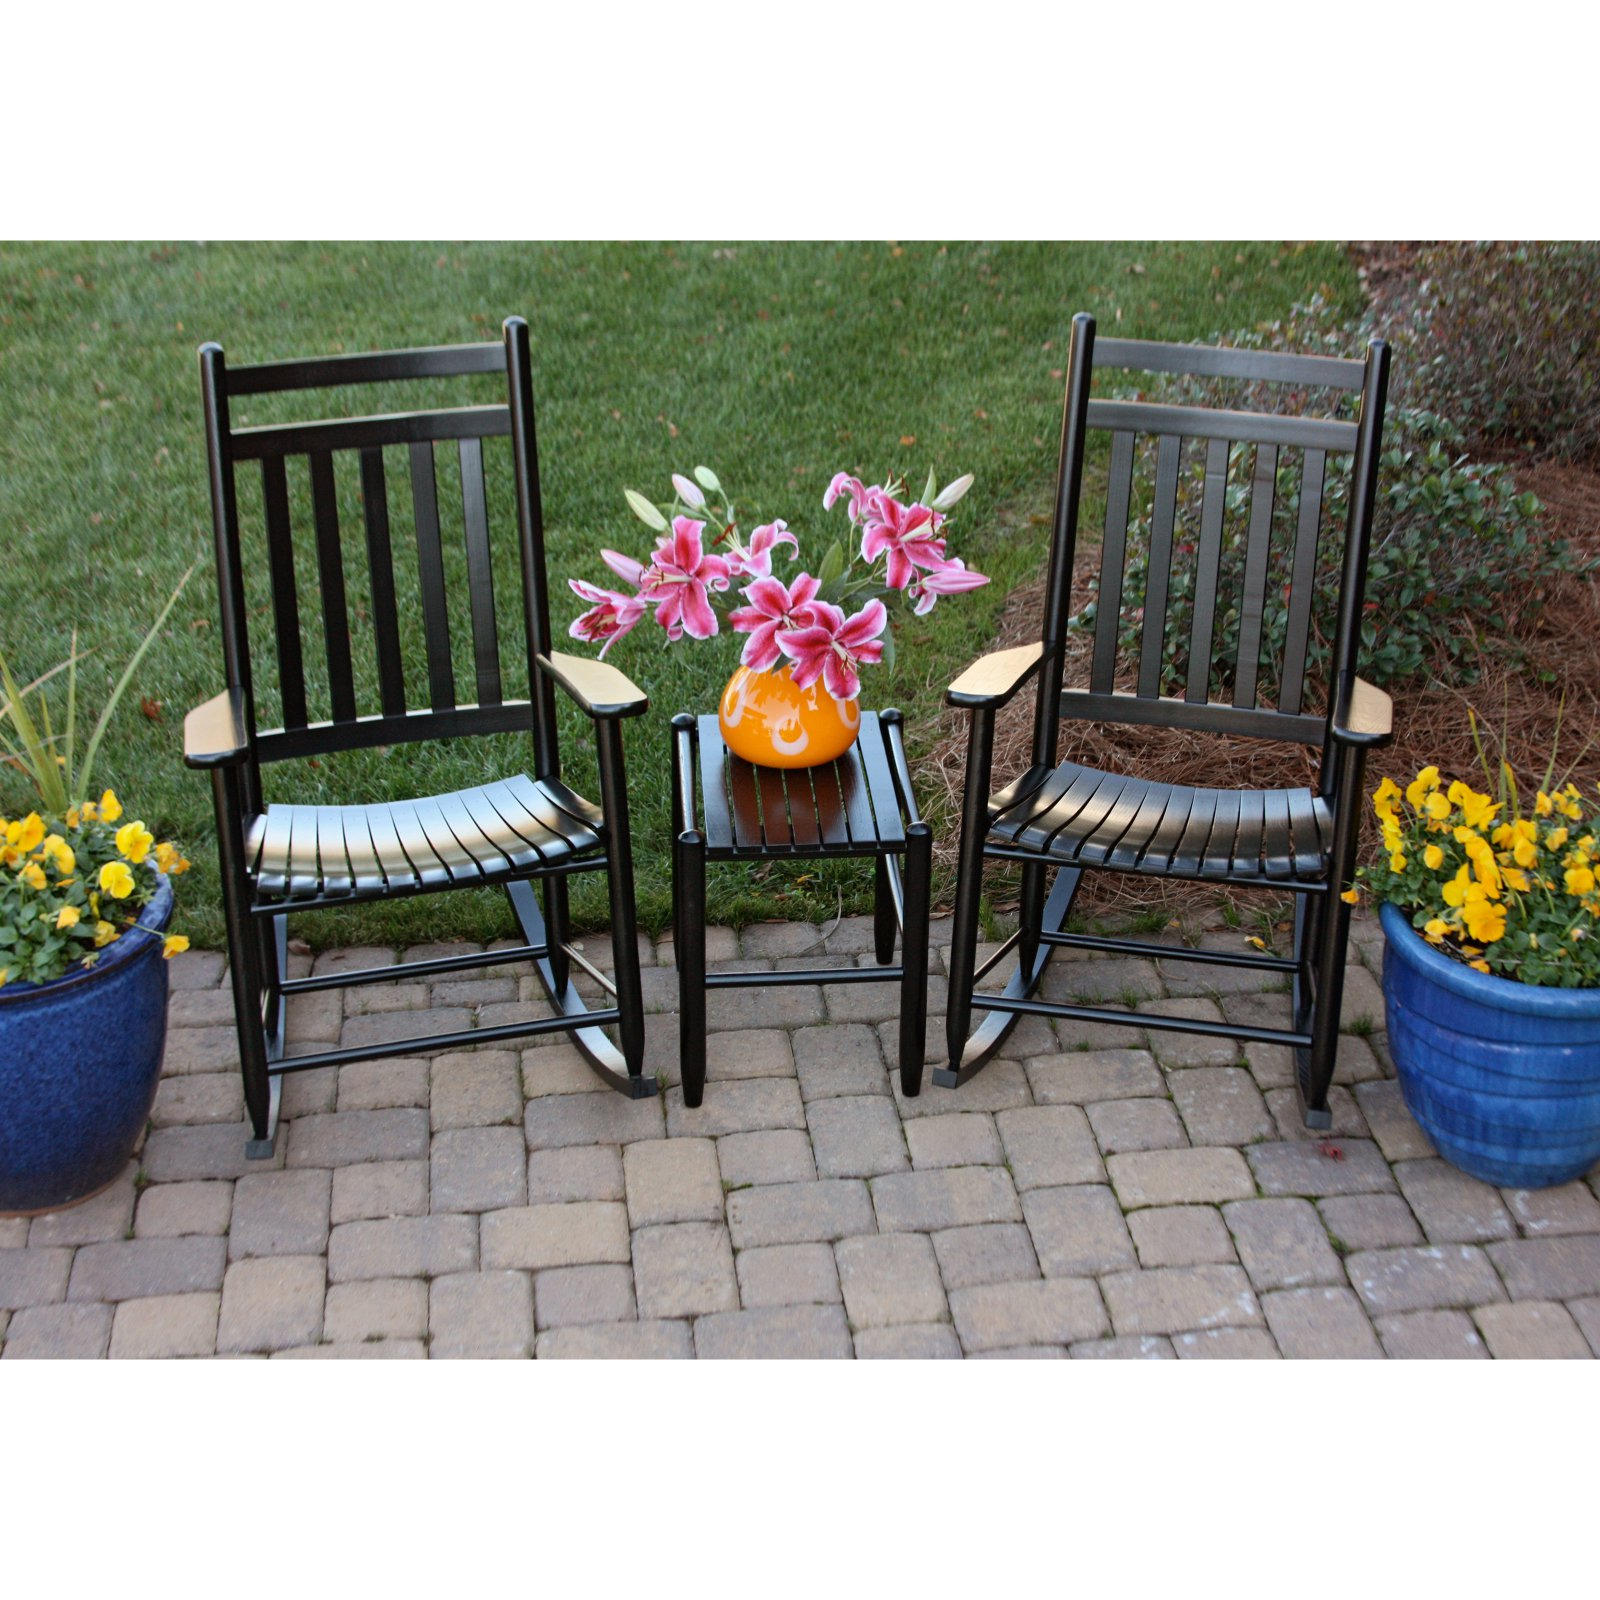 Dixie Seating Penrose 3 Piece Patio Rocking Chair Set - Black